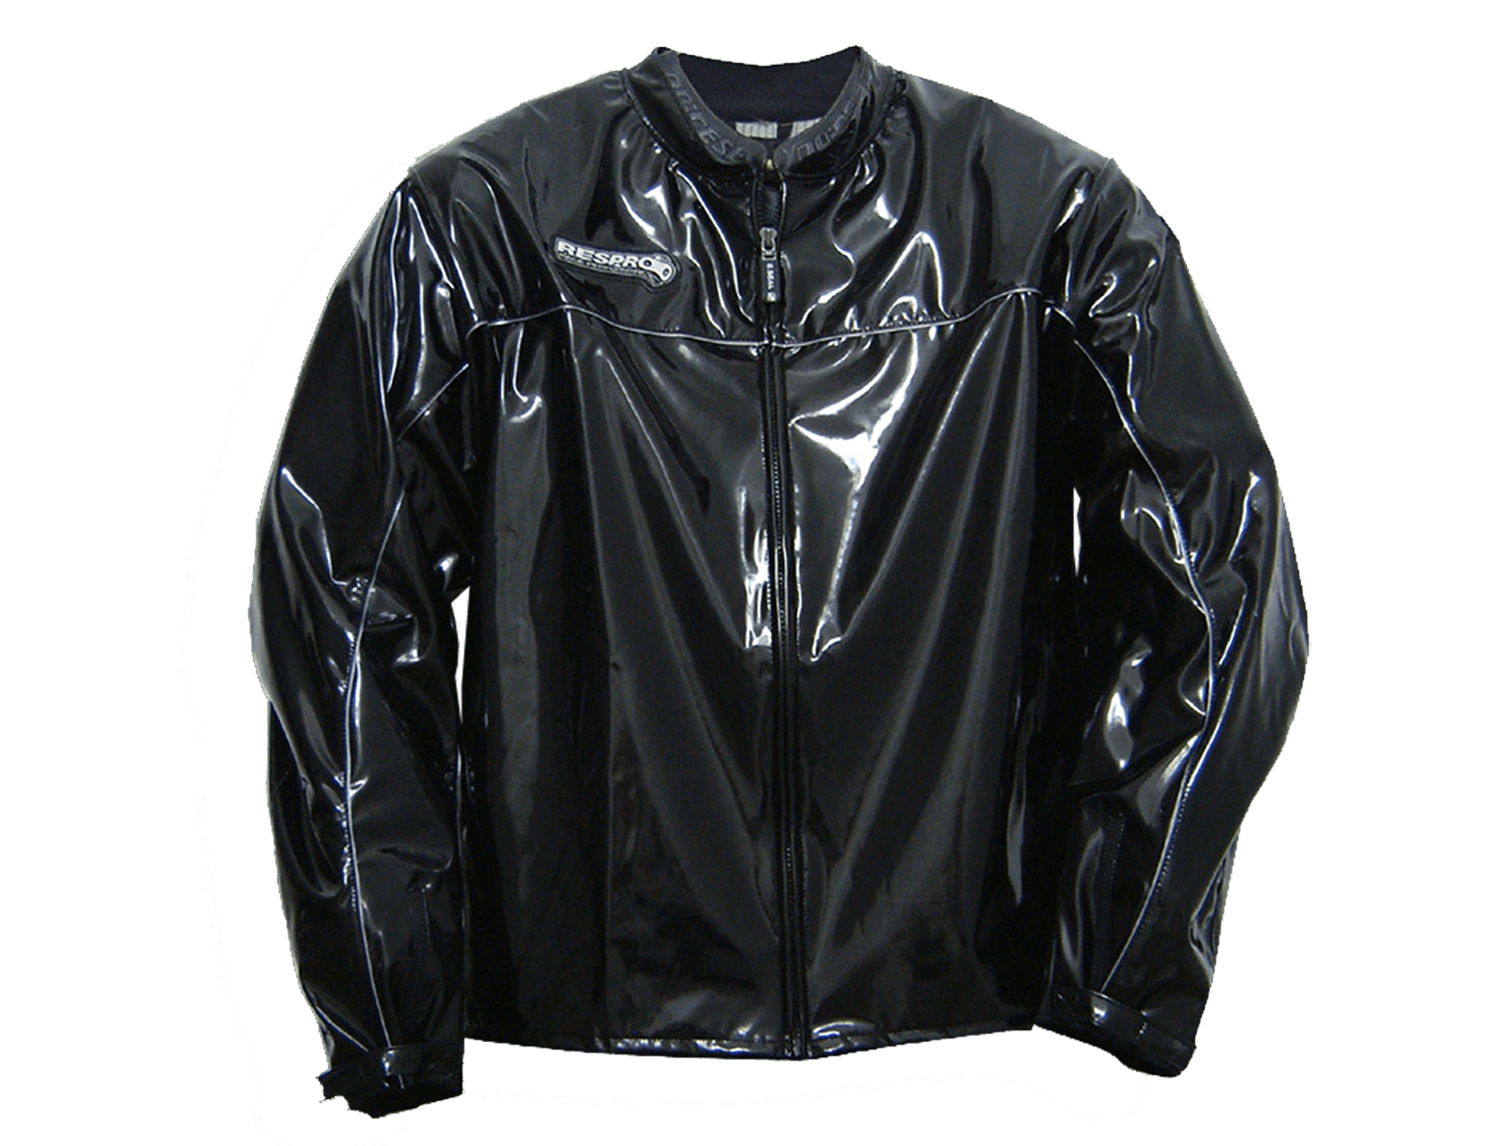 Slick Half Jacket - Black